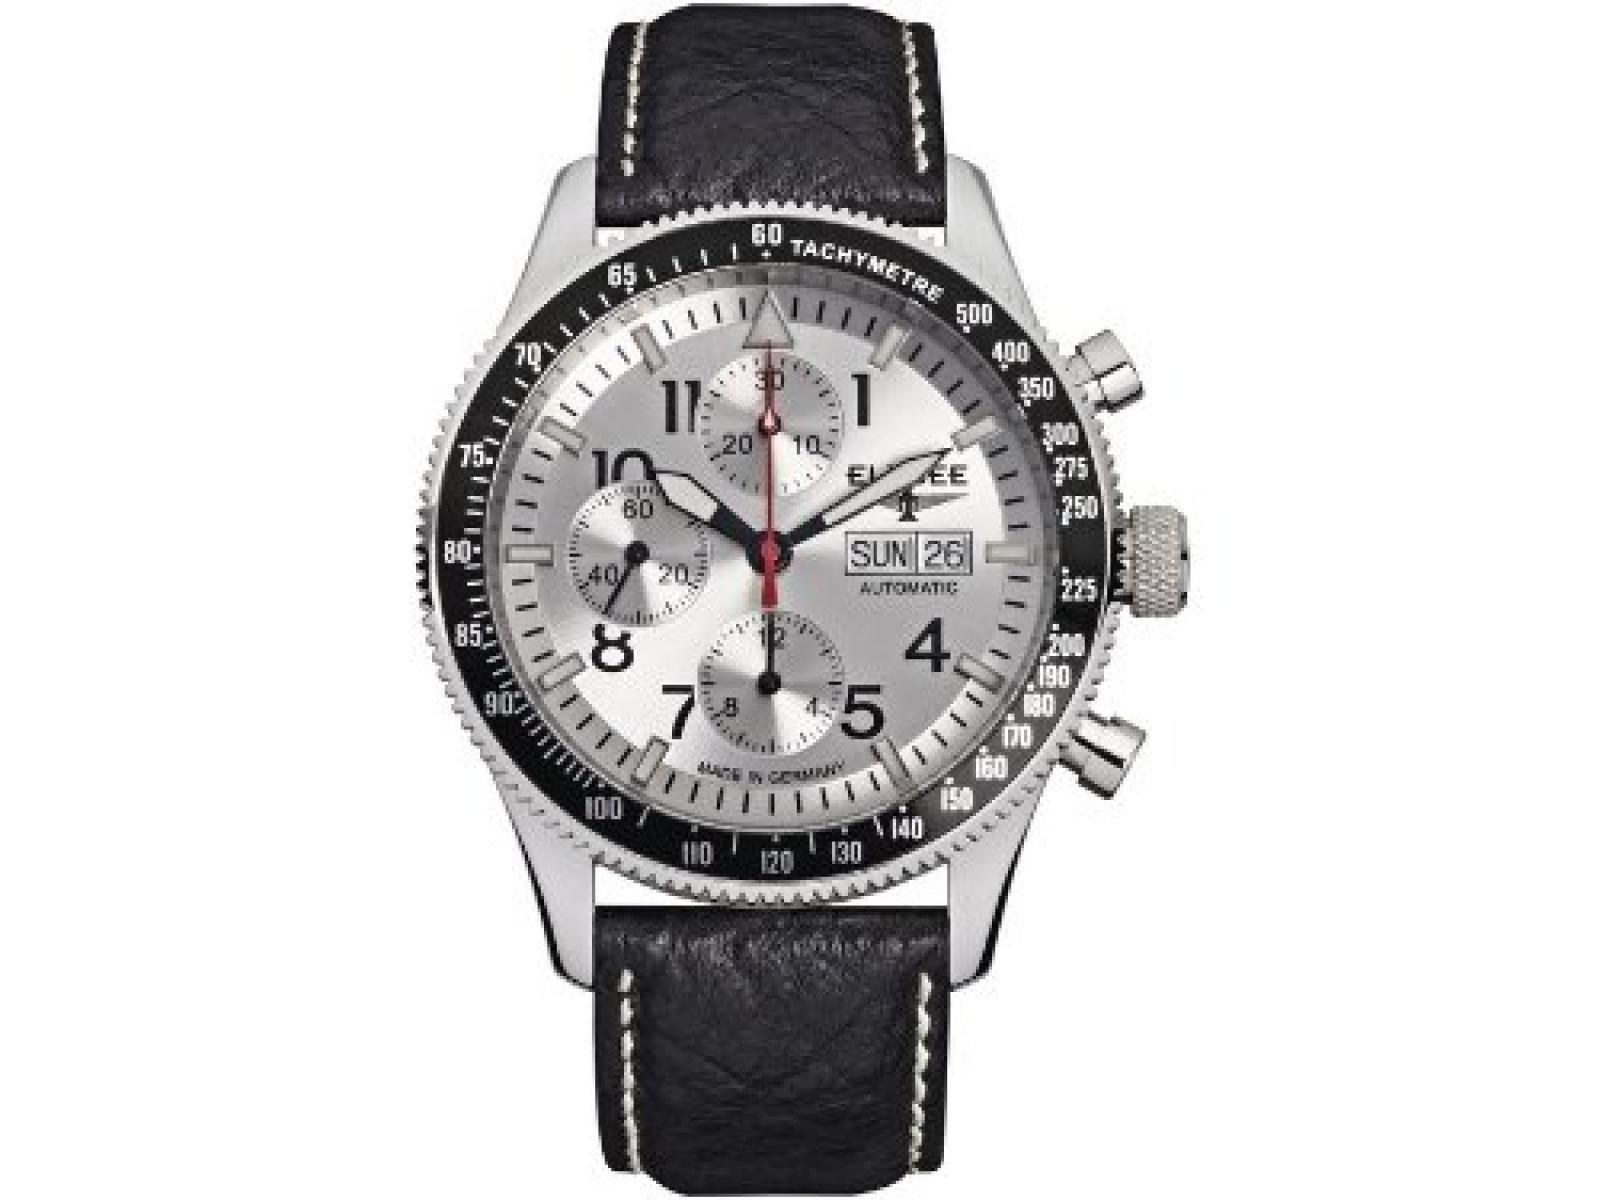 Elysee Herrenuhr Chronograph Executive I 80530silver